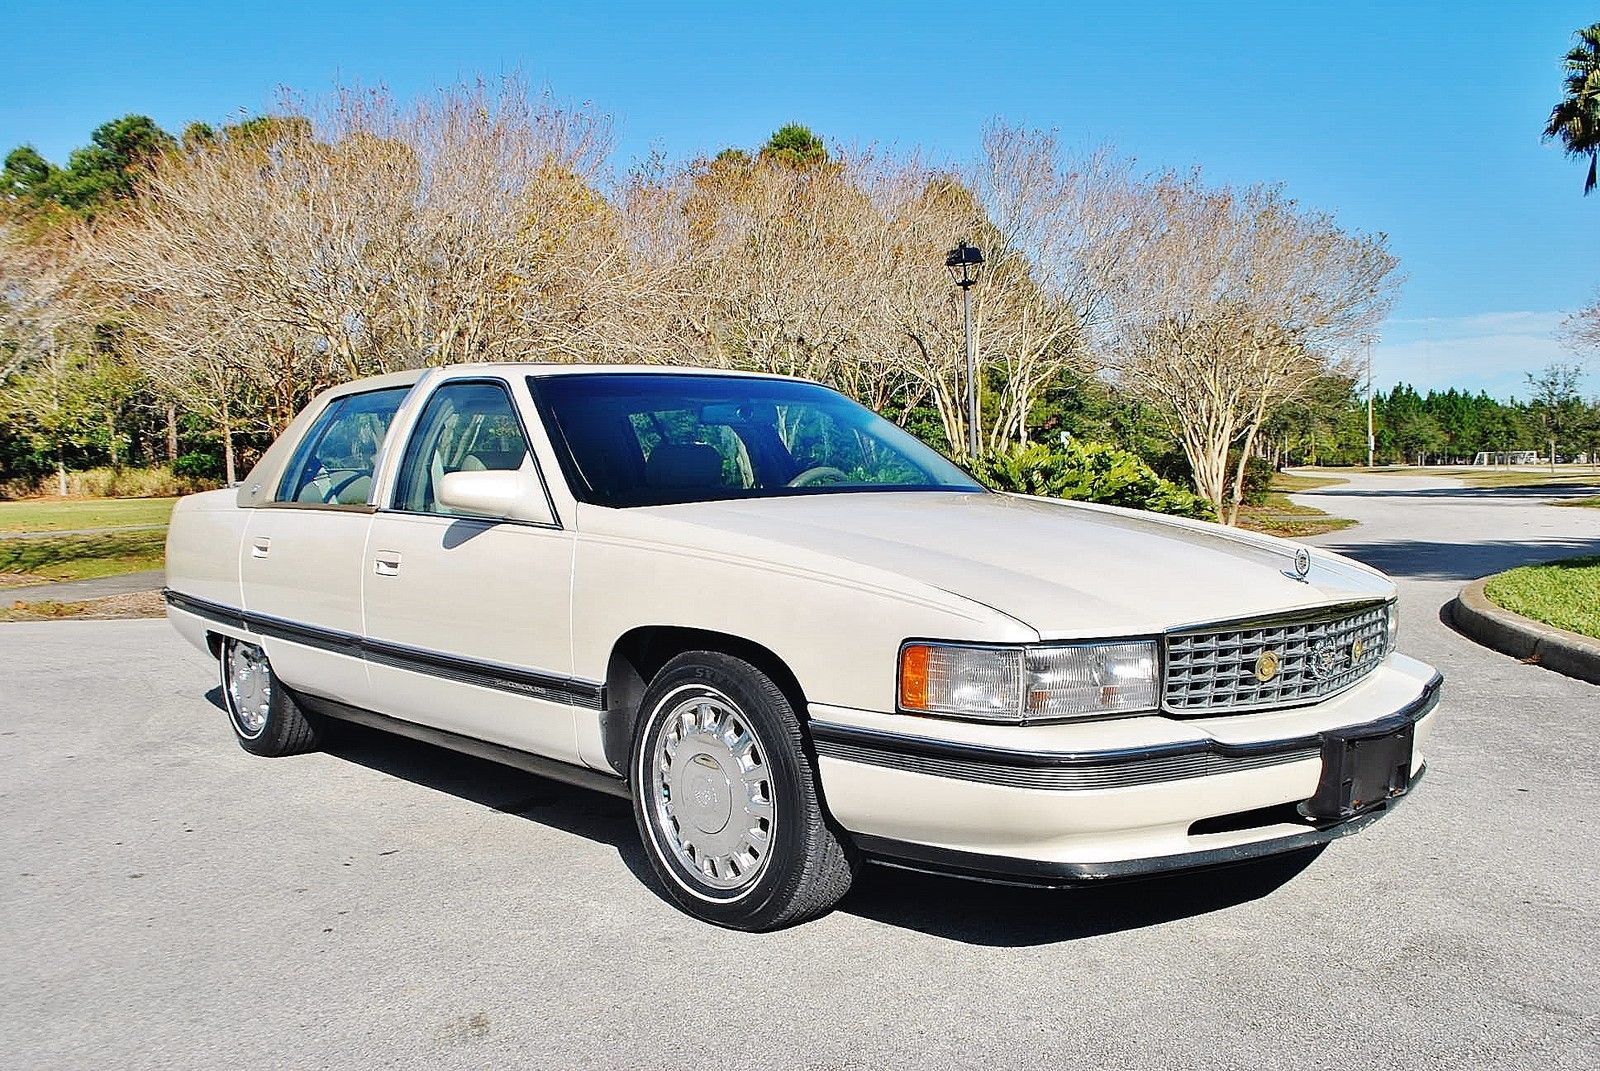 1994 Cadillac DeVille Wow and mint original florida car.